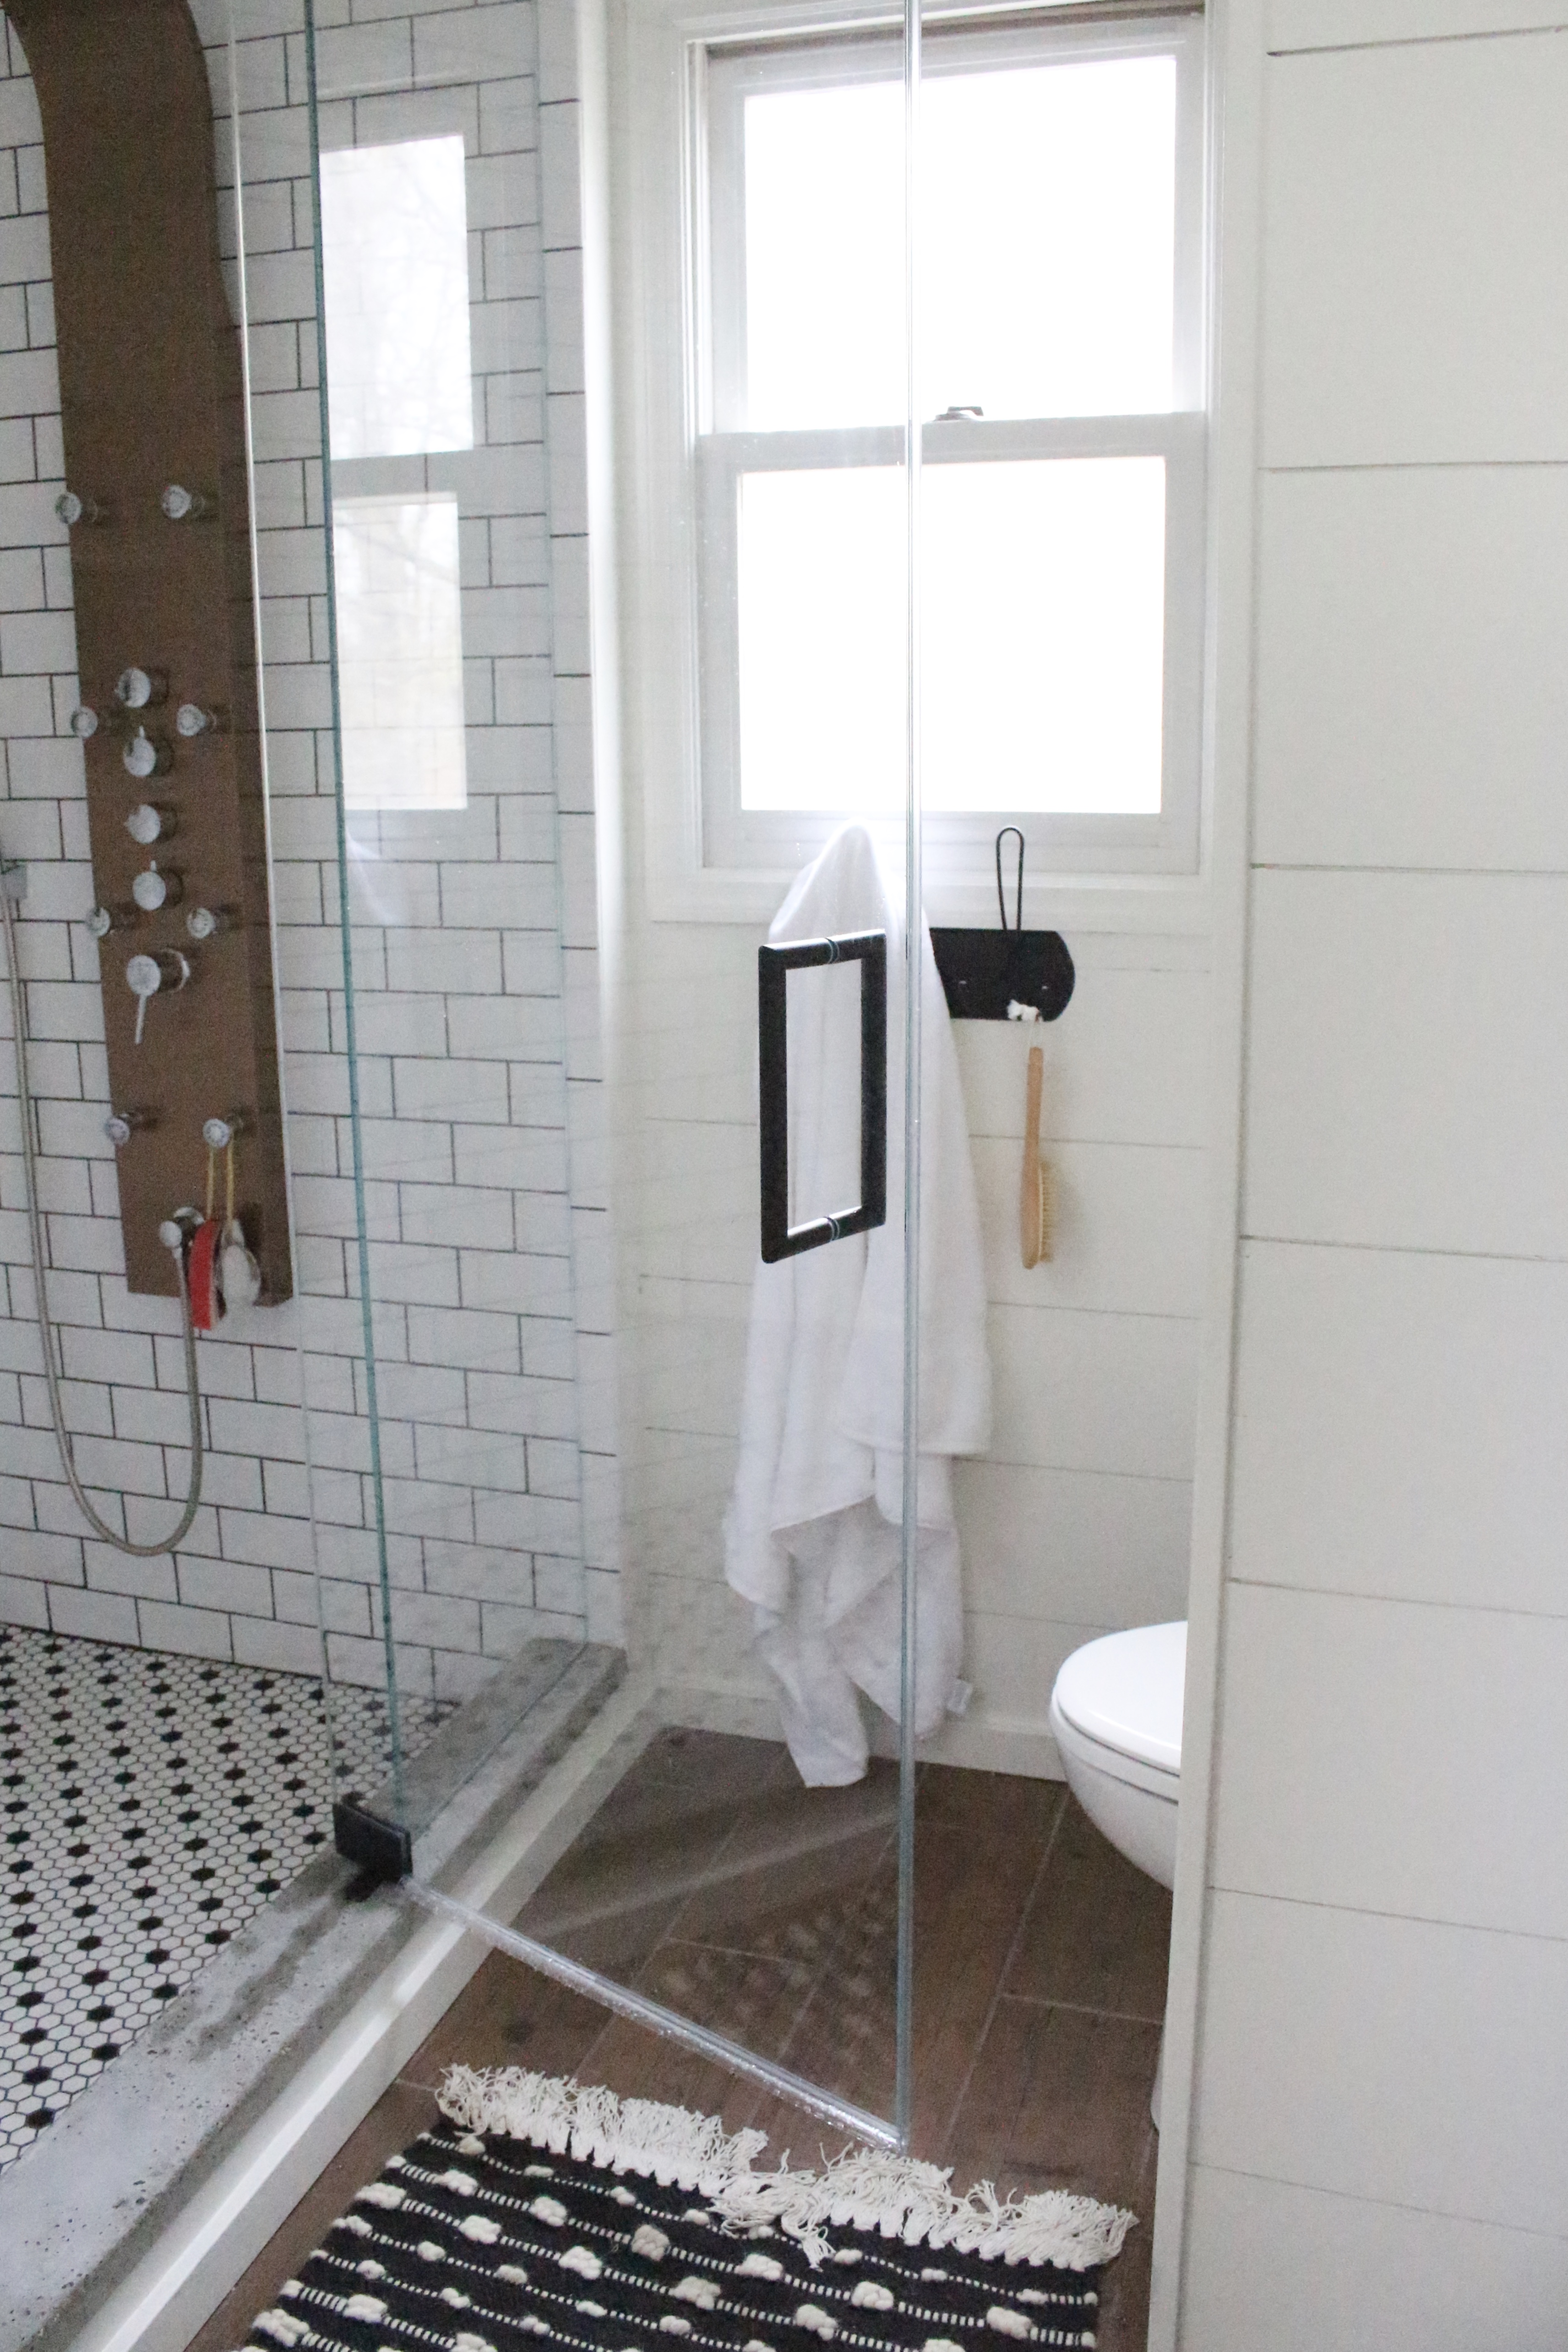 Shower glass- bathroom renovation- master bathroom- subway tile- spa shower- copper accents- farmhouse style bath